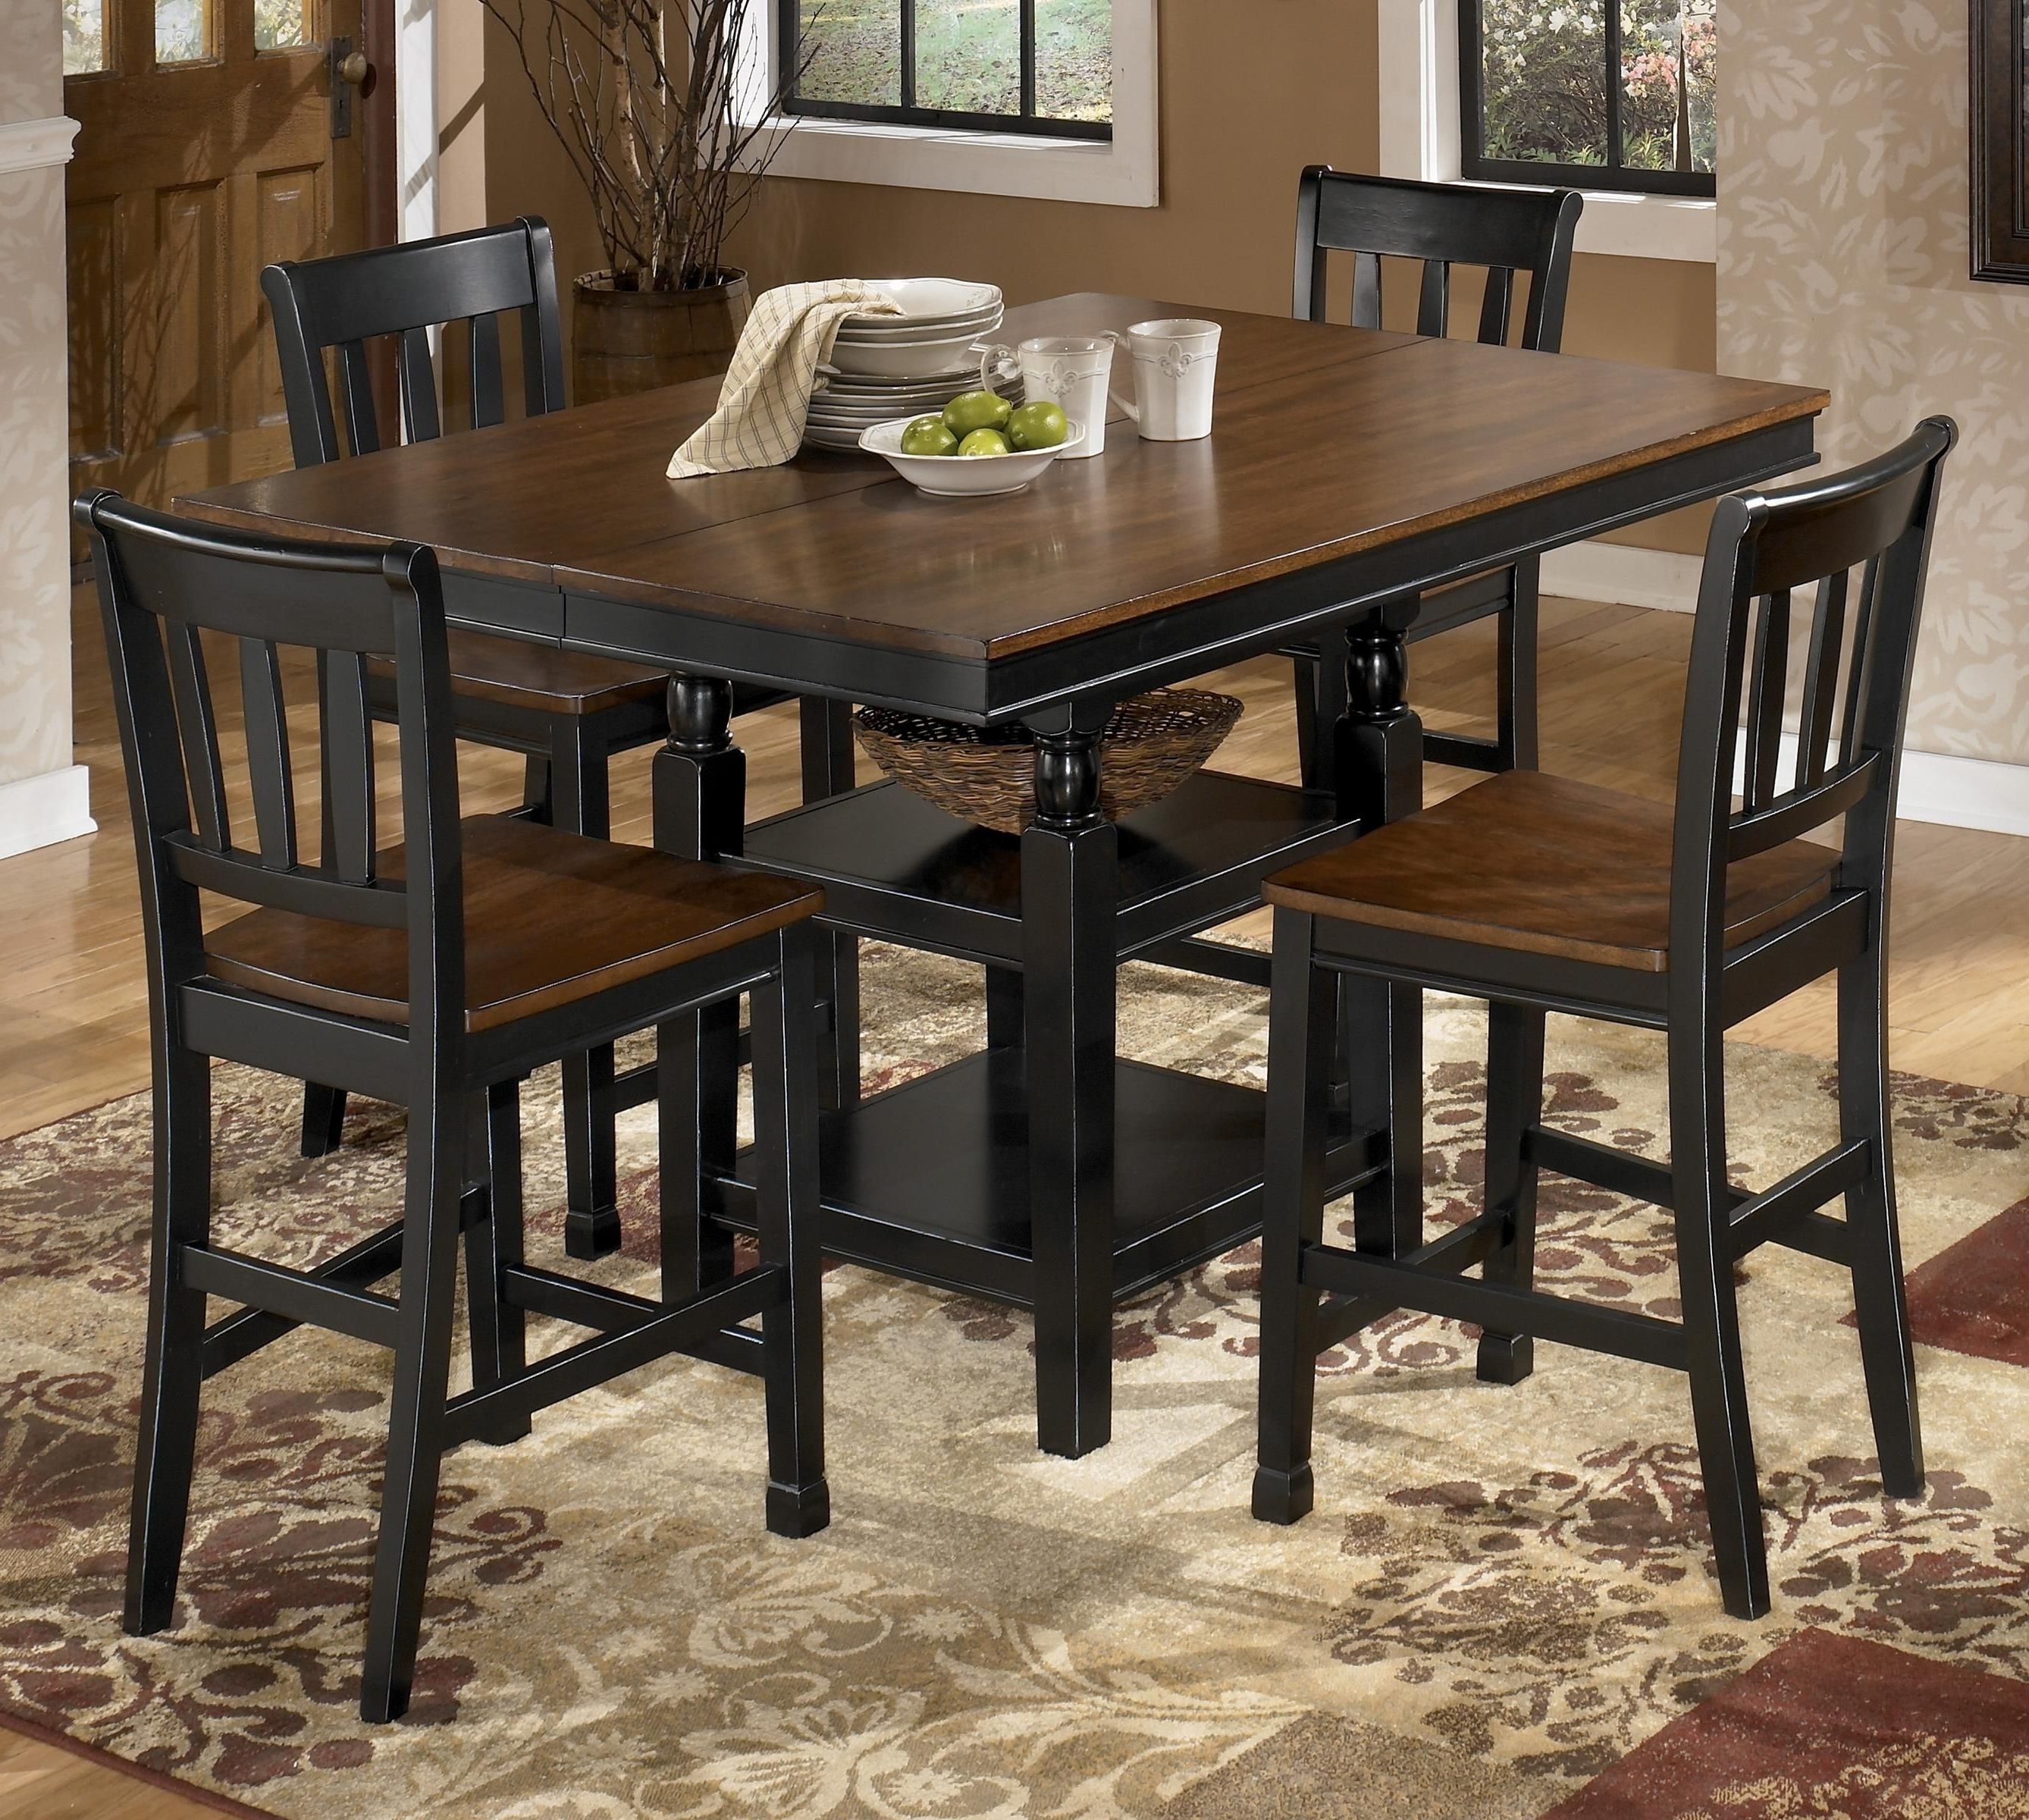 Jaxon Grey 5 Piece Round Extension Dining Sets With Wood Chairs With Regard To Recent Ashton Round Pedestal Dining Table Elegant Kitchen Dining Area (View 6 of 25)